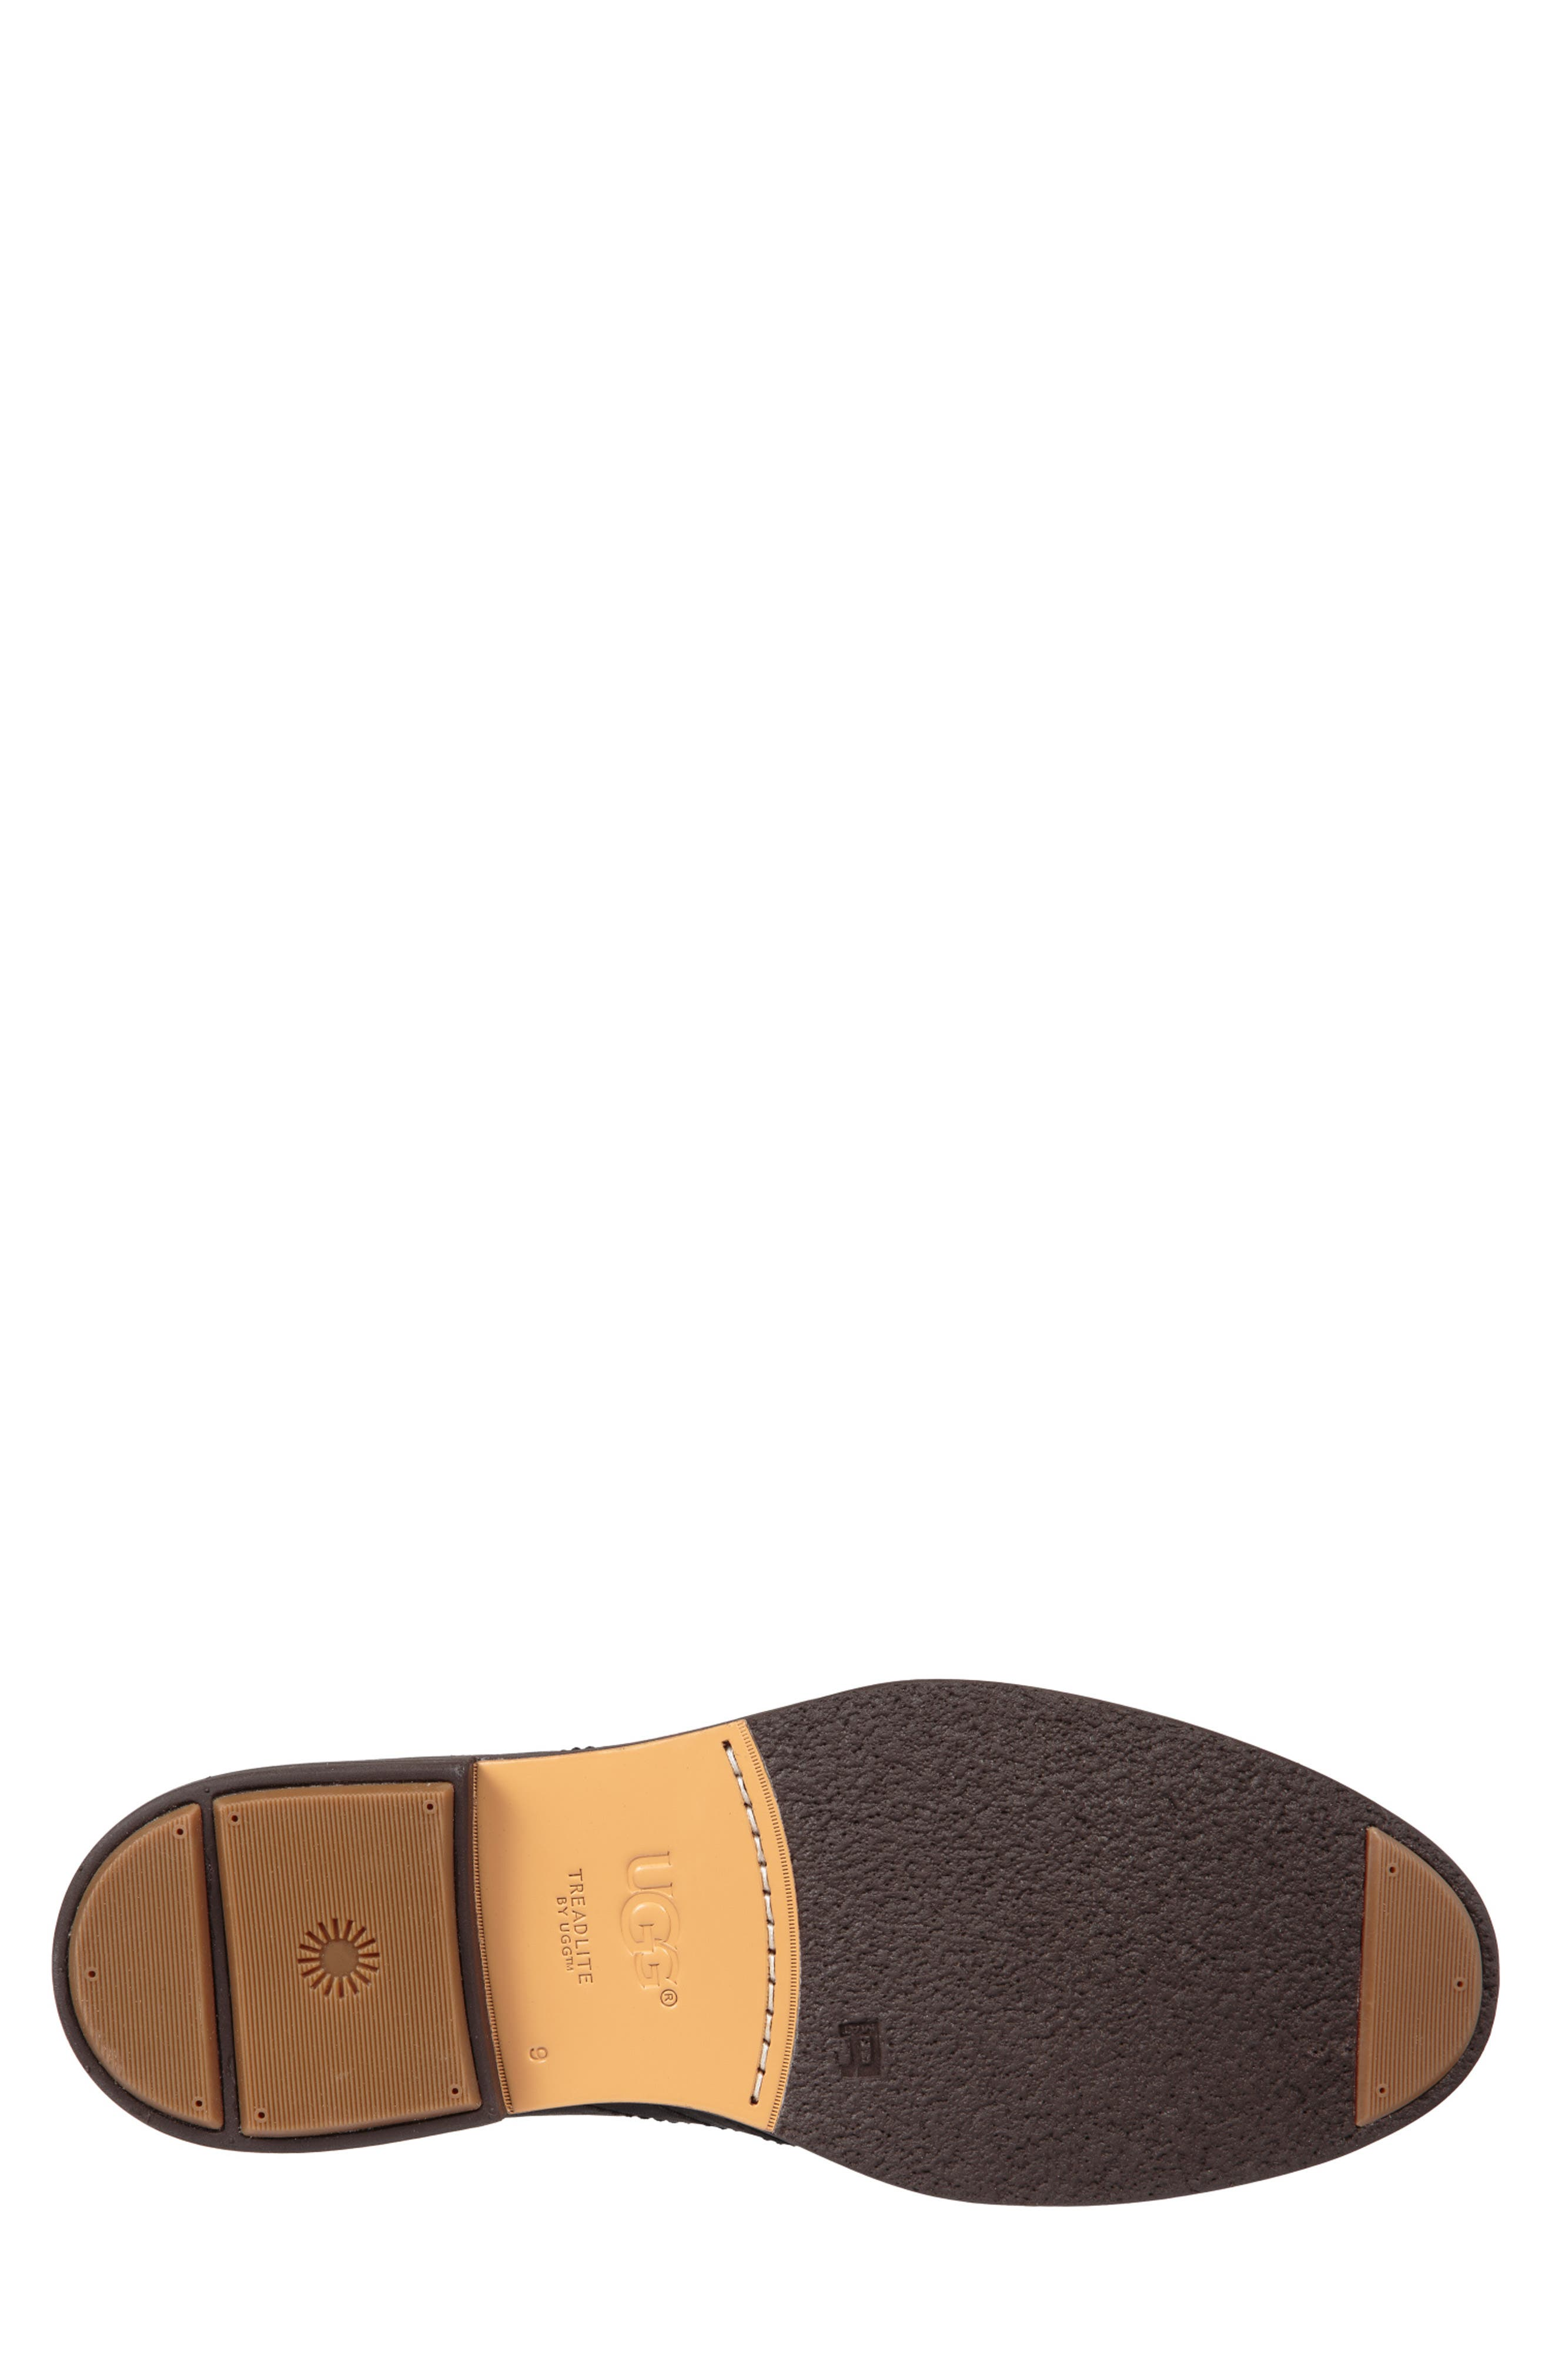 UGG<SUP>®</SUP>, Australia Dagmann Chukka Boot, Alternate thumbnail 5, color, BLACK LEATHER/SUEDE